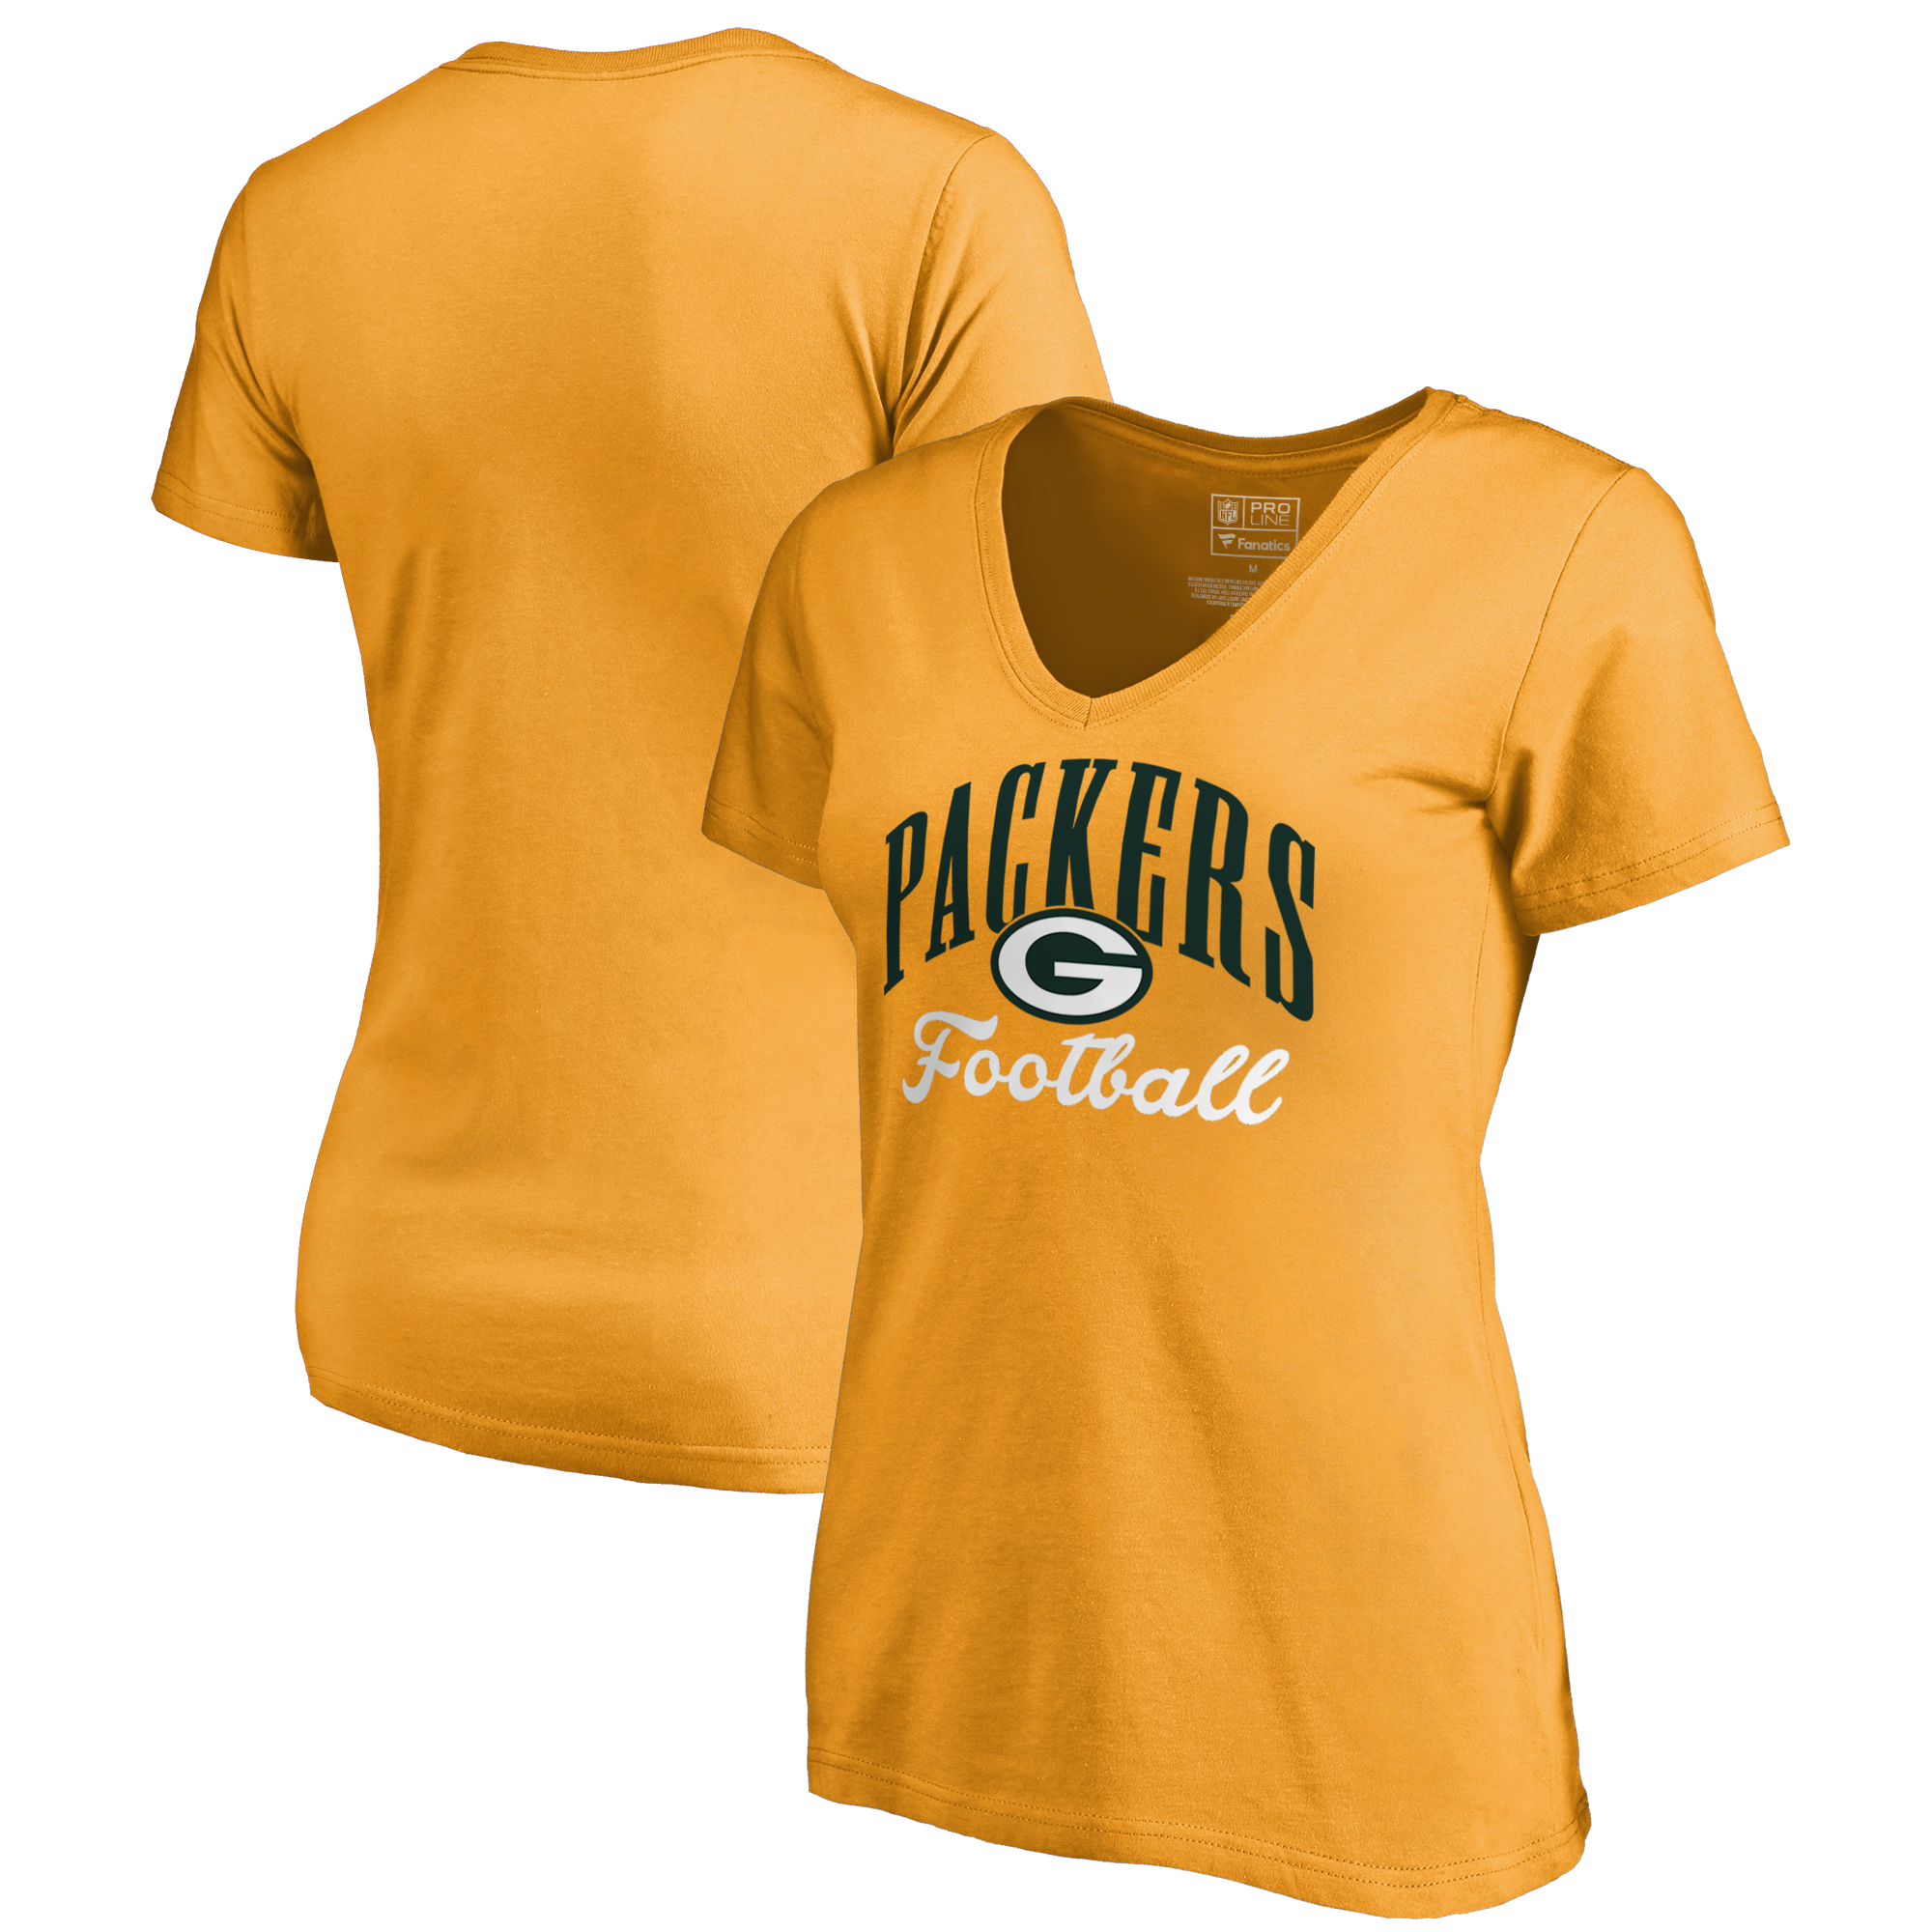 Green Bay Packers NFL Pro Line by Fanatics Branded Women's Victory Script V-Neck T-Shirt -Gold